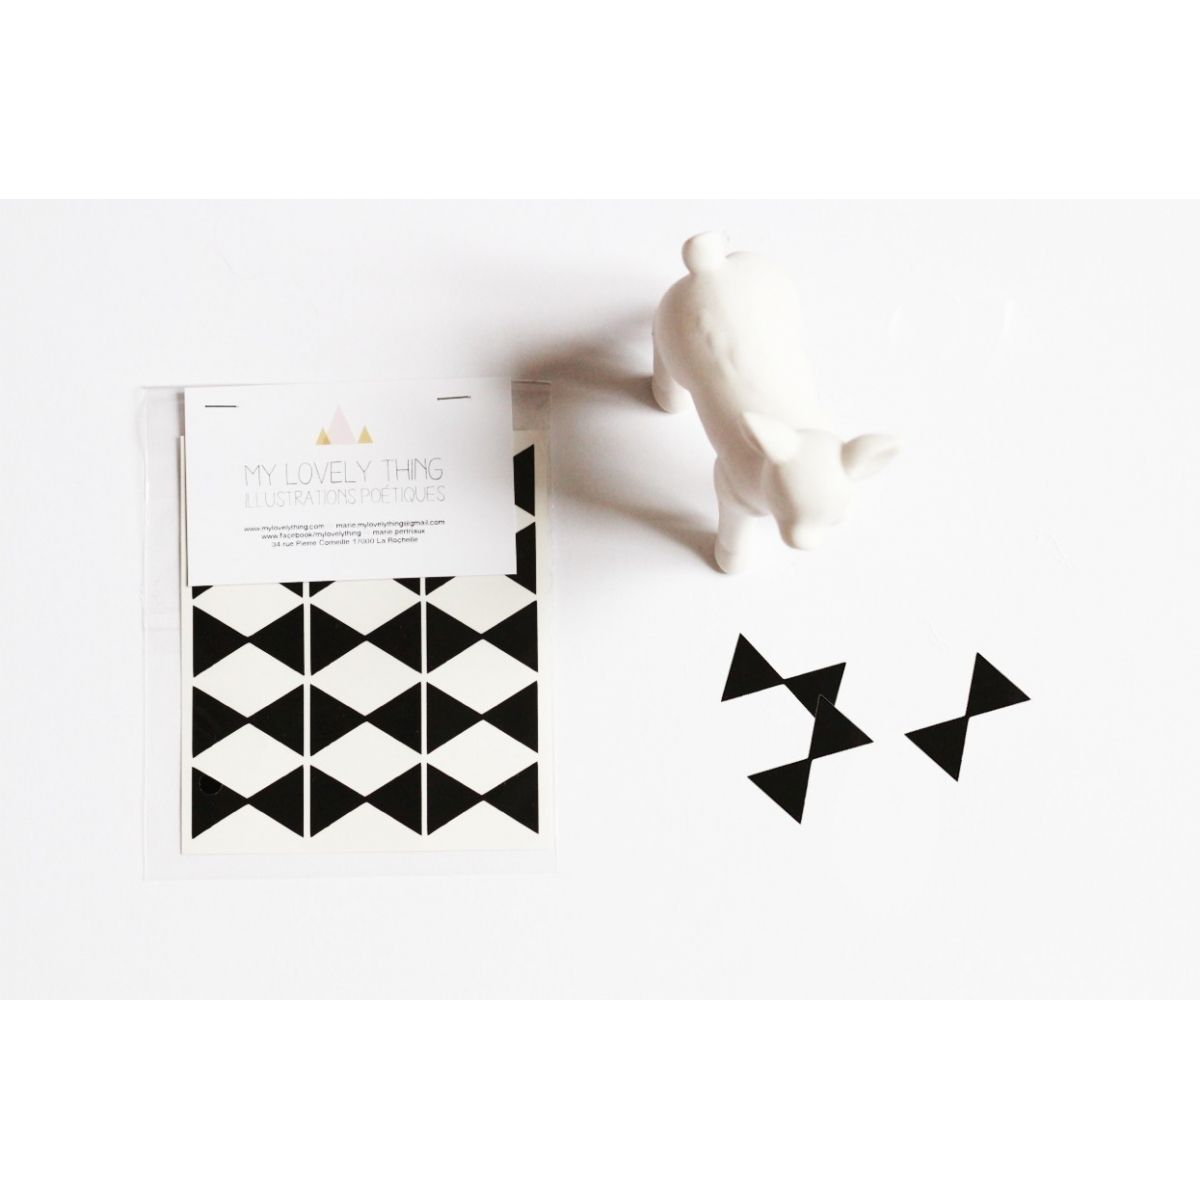 My Lovely Thing - Stickers Bow Tie black - 1